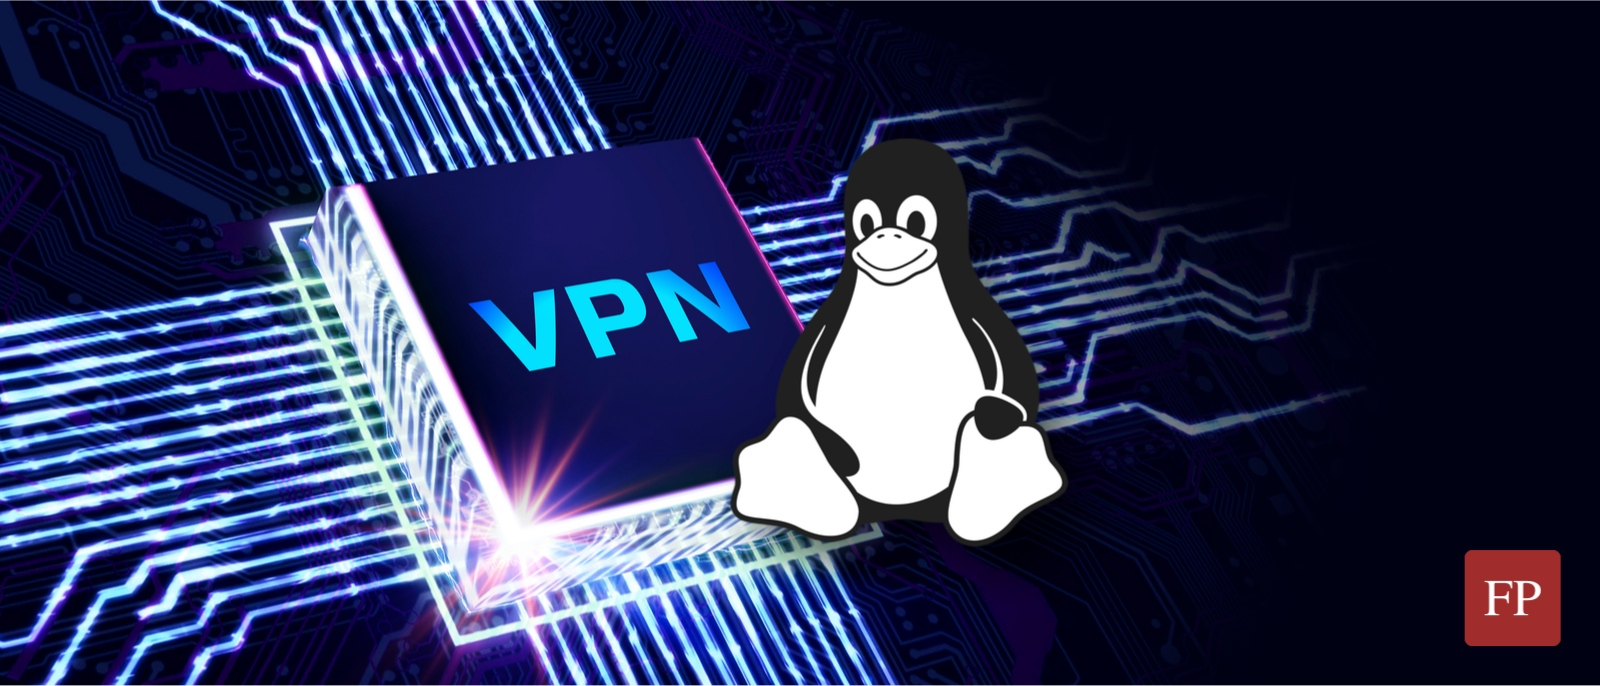 Linux VPN 39 September 13, 2020